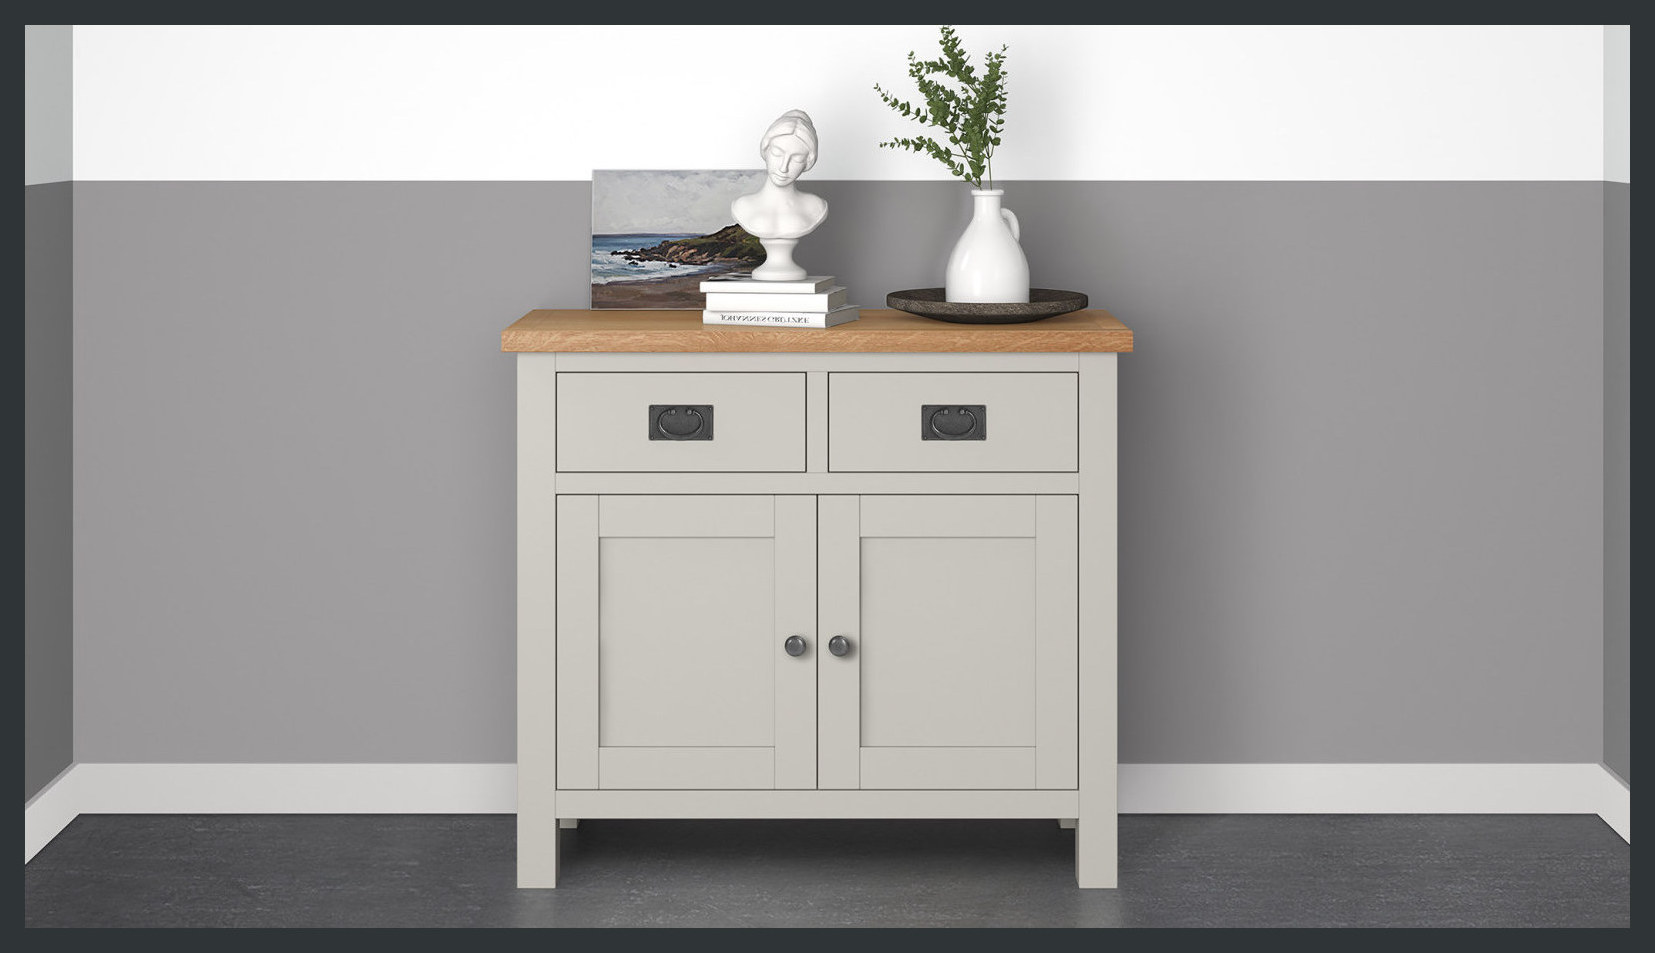 Rustique Home Florence Painted and Natural 100% Solid Oak Sidebaord. Antique Metal handles. Twin color, main body is painted grey and top is natural oak color. There are two drawers on the top and two storage cabinets at the bottom.